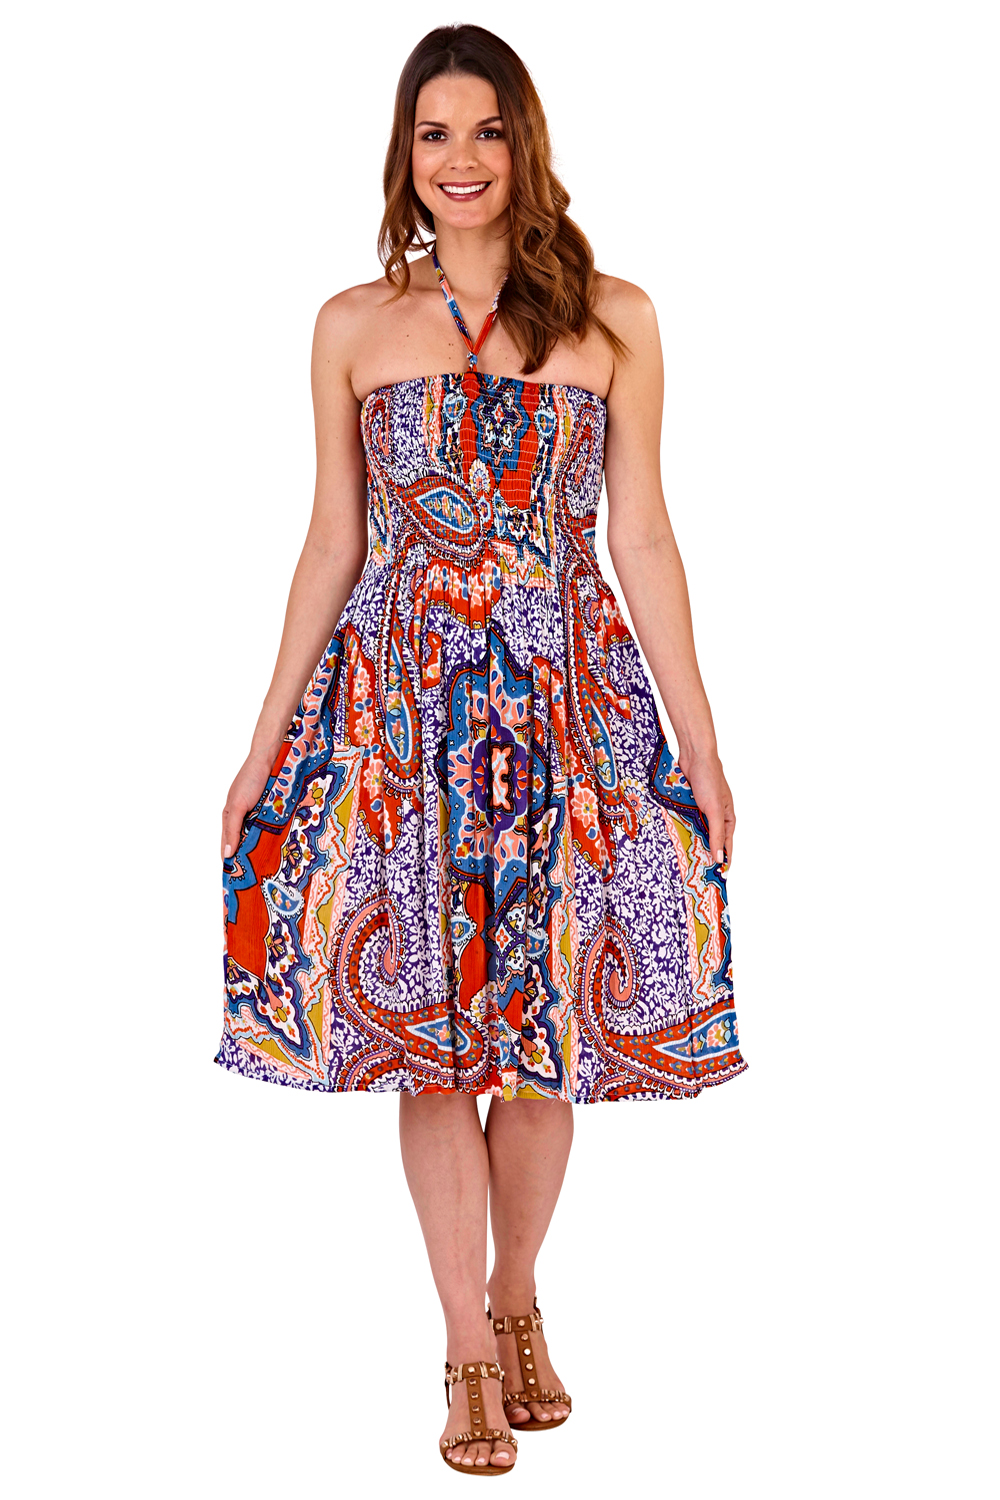 Pistachio-Womens-Patterned-3-In-1-Dresses-Ladies-New-Cotton-Summer-Beach-Skirts thumbnail 20